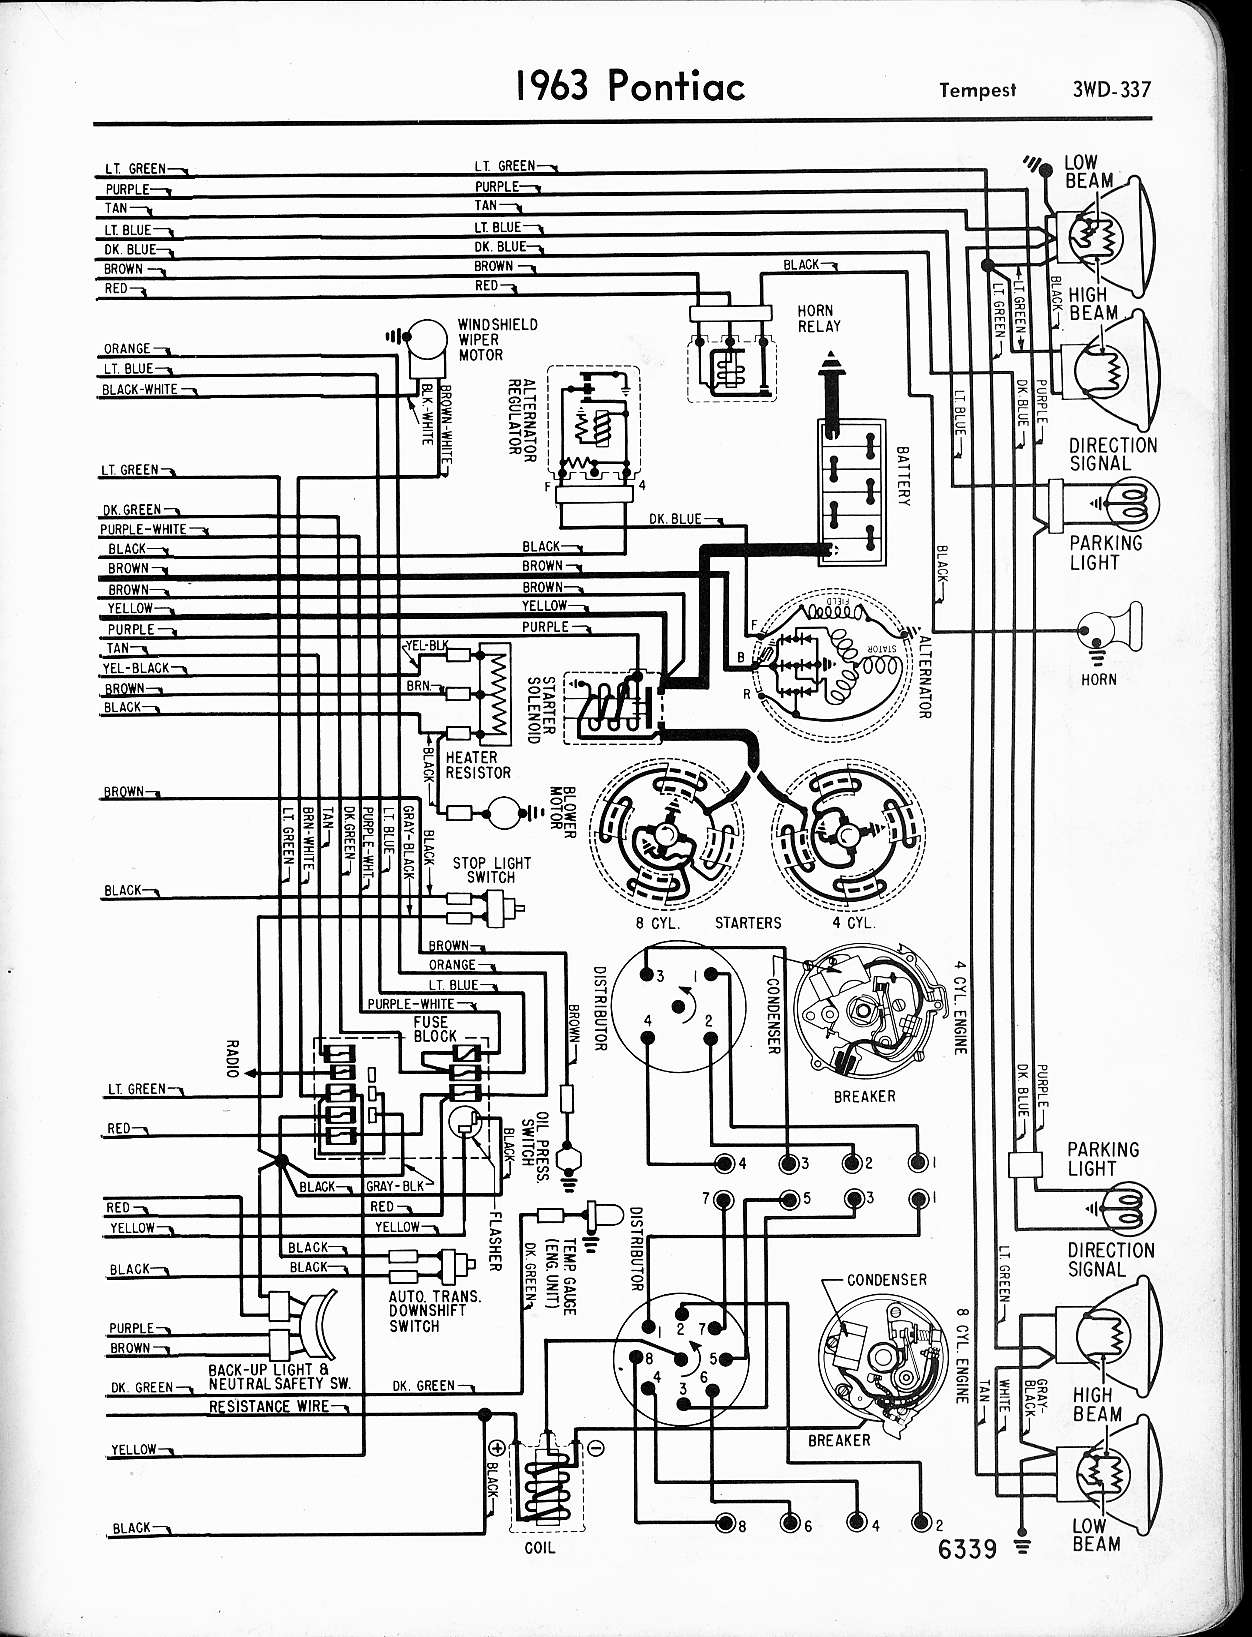 1970 pontiac grand prix wiring diagram just wiring data rh ag skiphire co uk 1970 pontiac lemans wiring diagram 1970 pontiac gto ignition wiring diagram